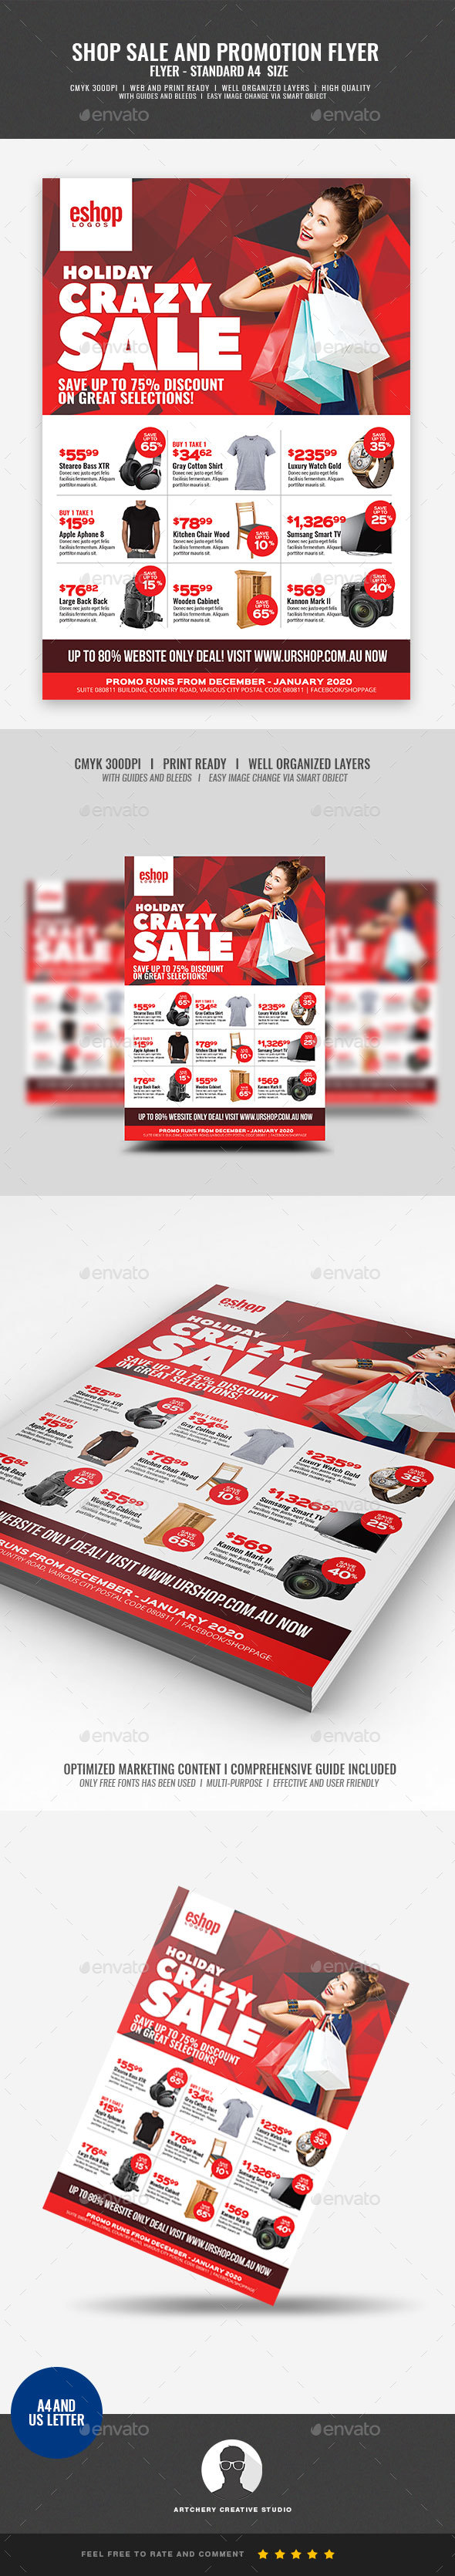 Product Sale and Promotional Sales Flyer - Corporate Flyers